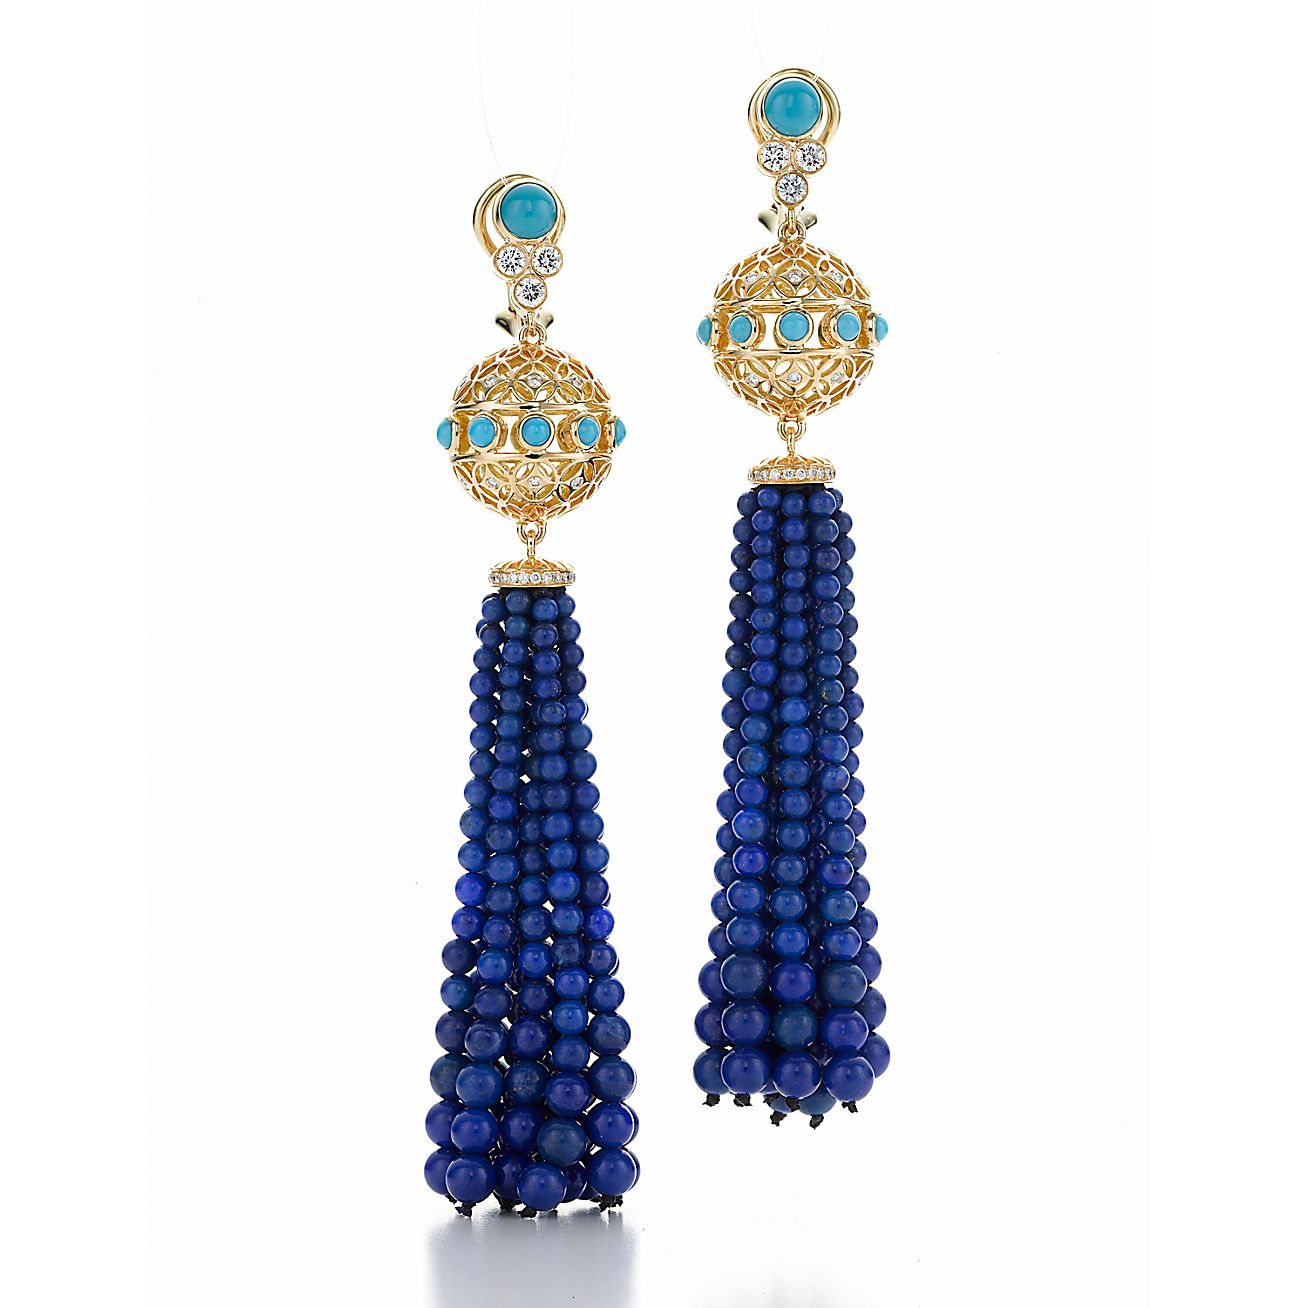 Paloma's Marrakesh<br>tassel earrings